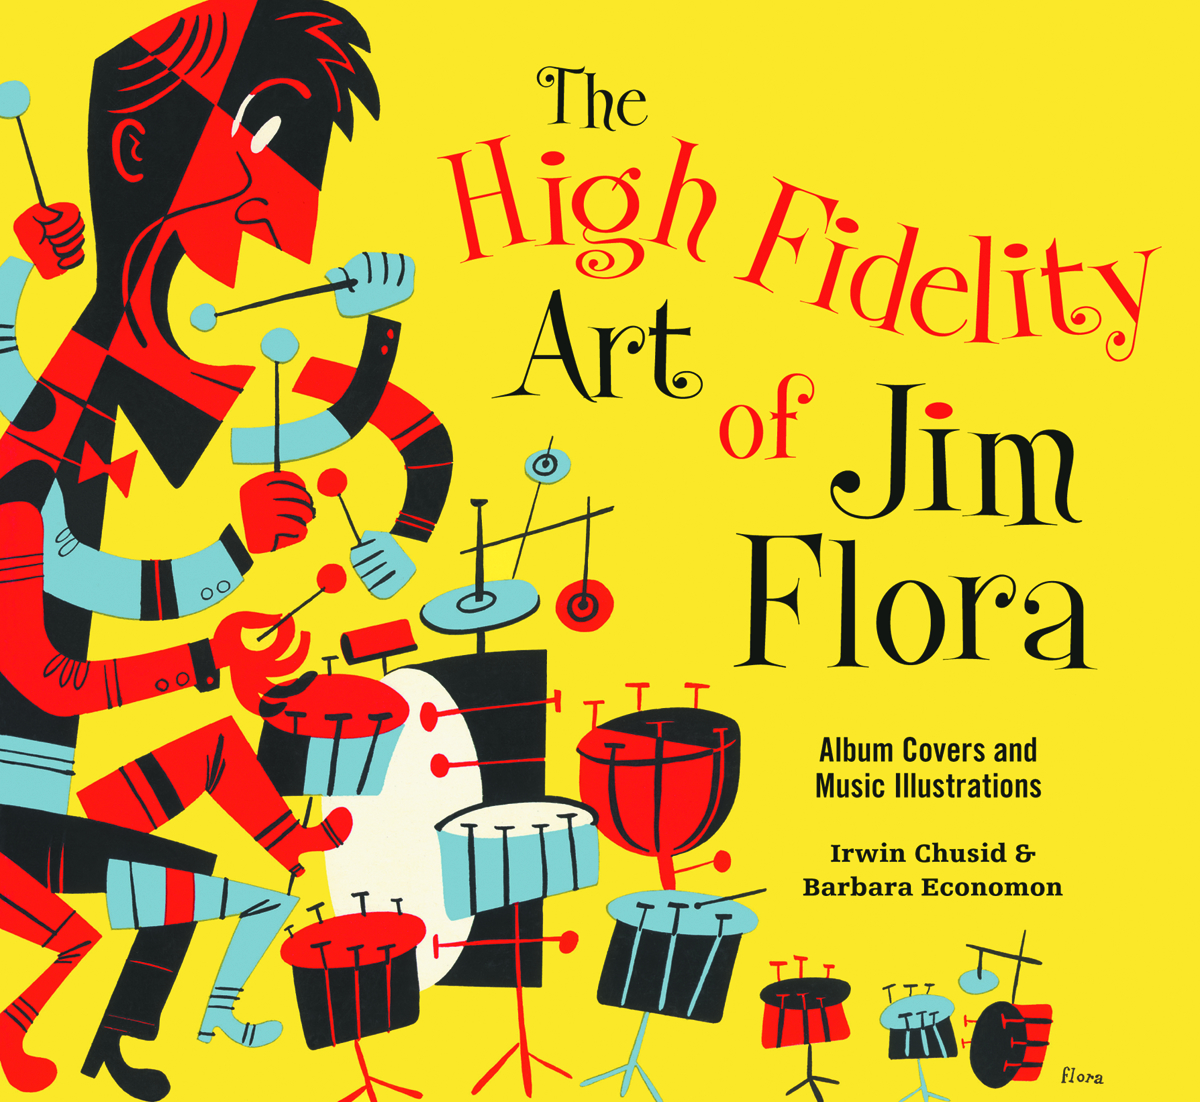 HIGH FIDELITY ART OF JIM FLORA SC